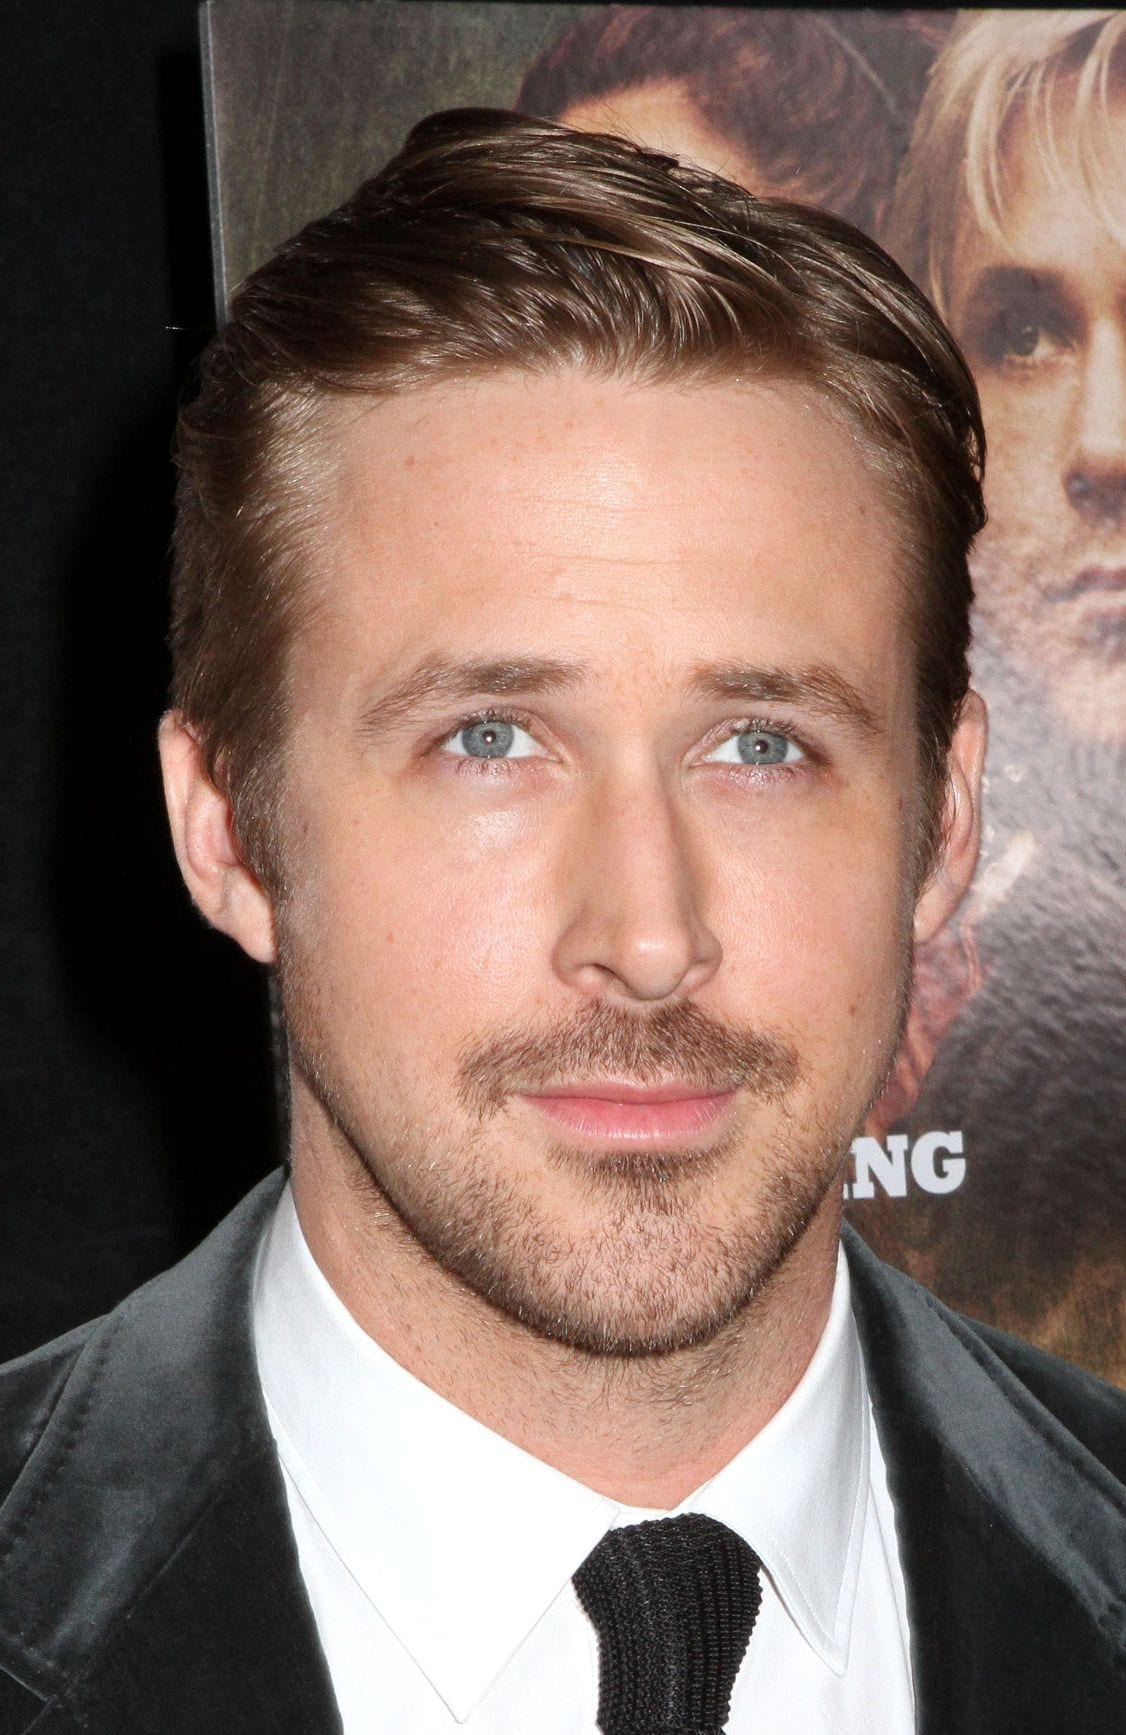 Ryan Gosling Clean Sweep Without Part March 2013